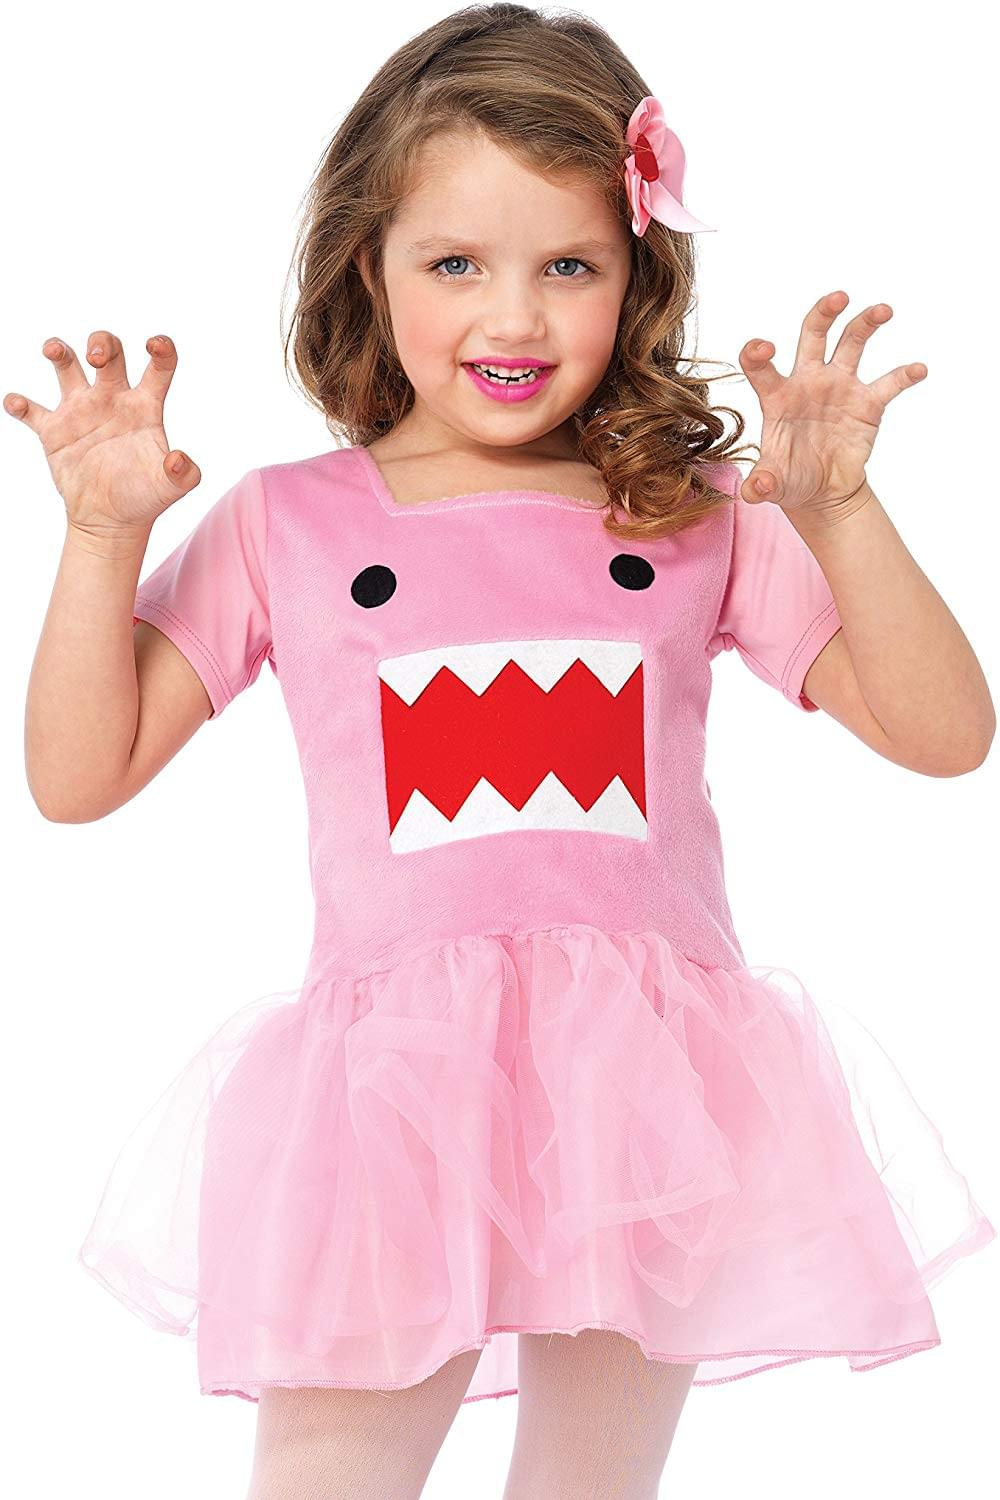 Domo Dress Child Toddler Costume